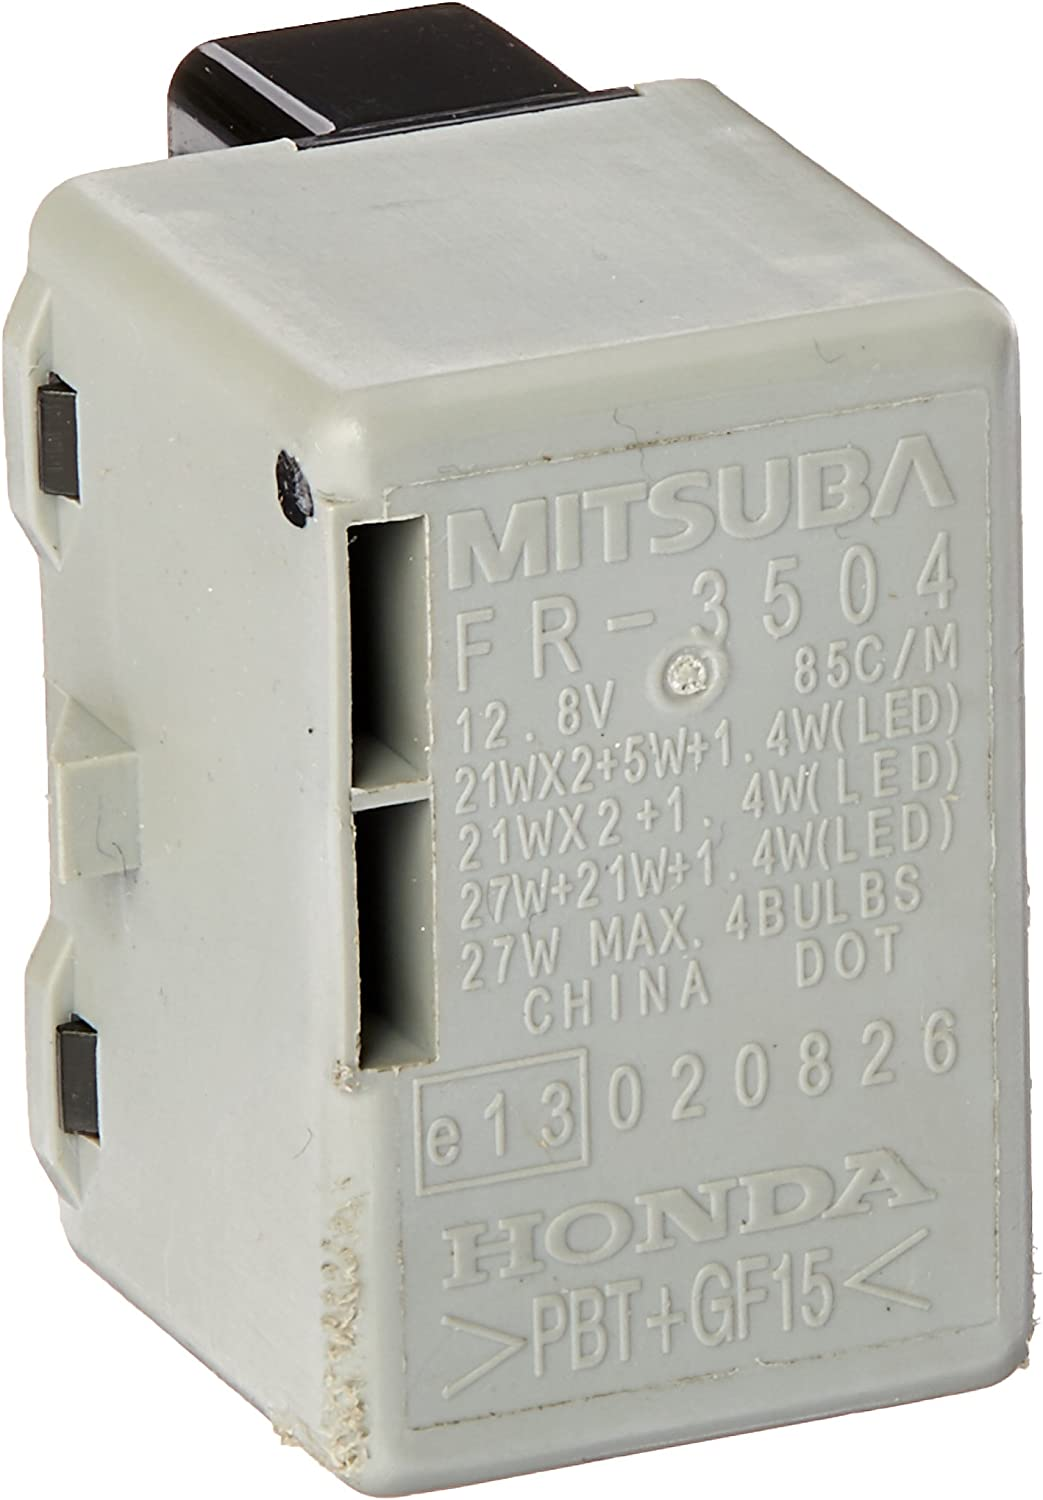 Standard Motor Products RY-717 Relay